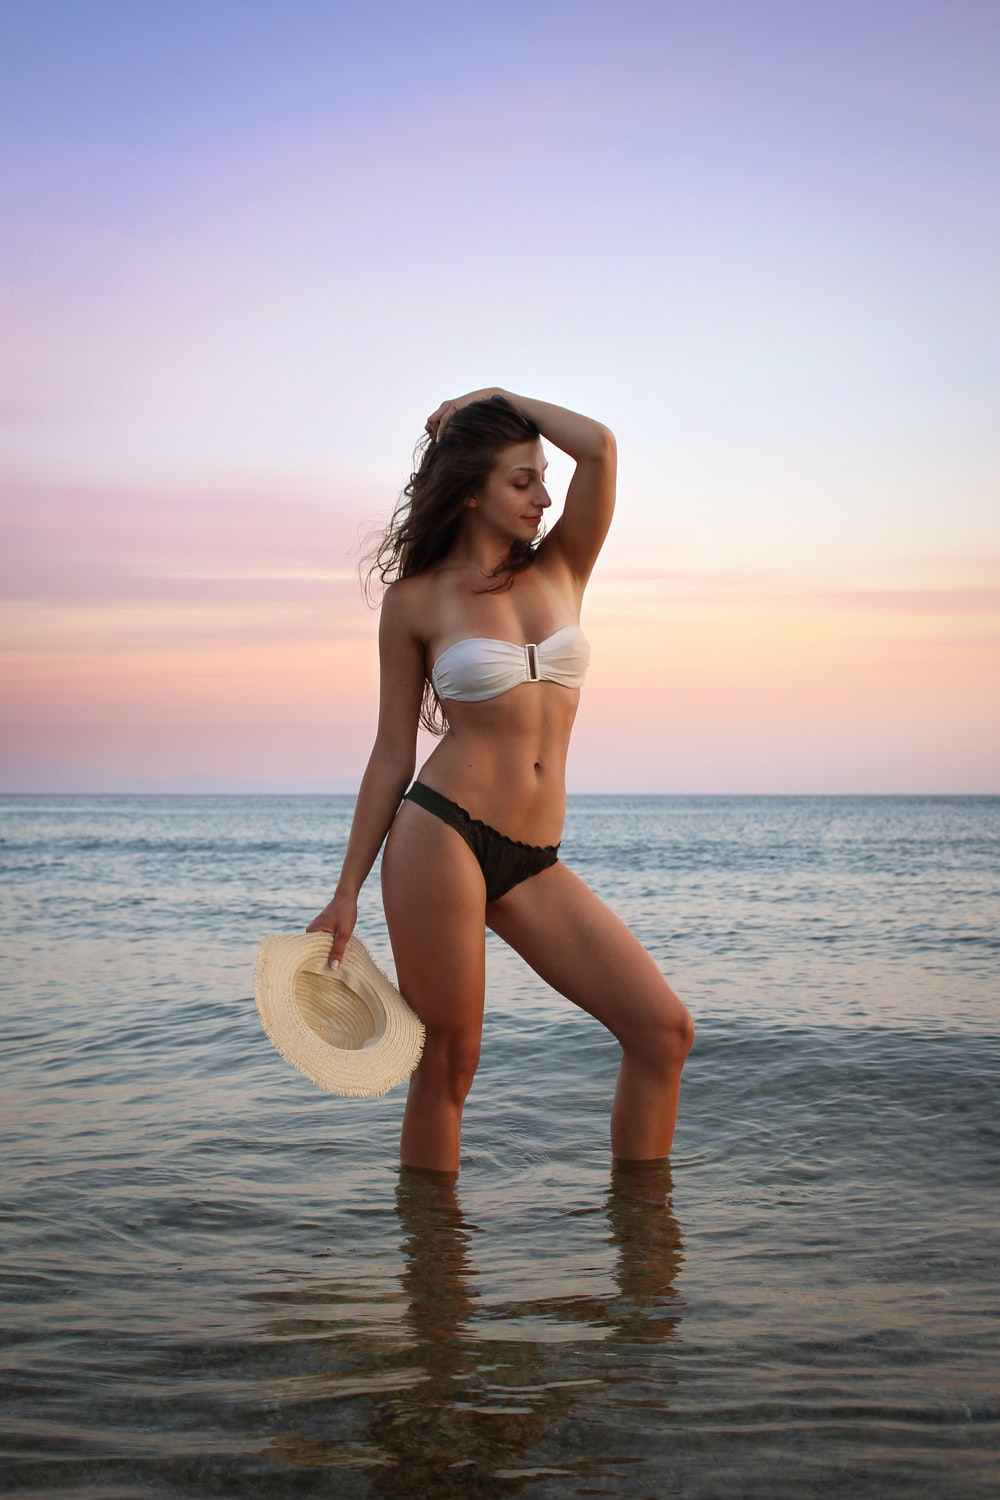 woman in bikini posing on seashore